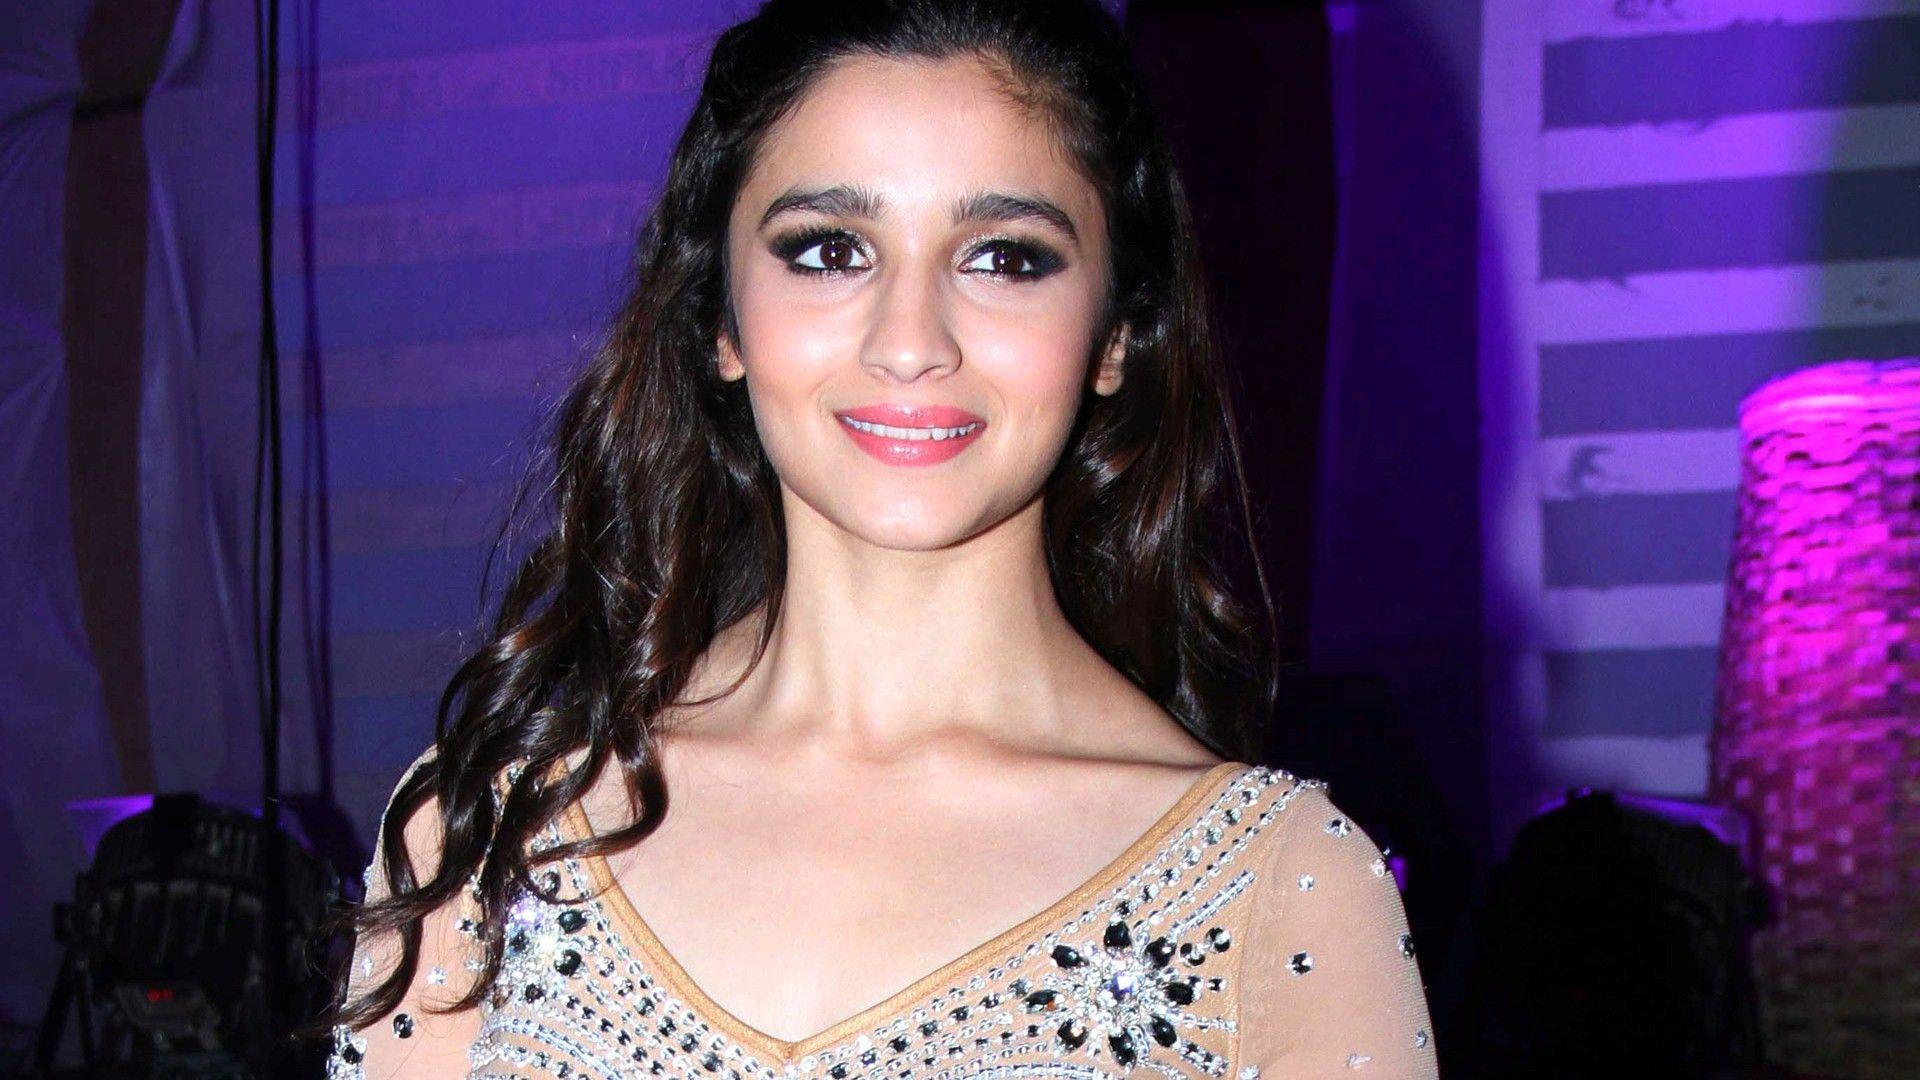 Alia Bhatt Wallpapers Free Download HD Cute Bollywood Actress Image